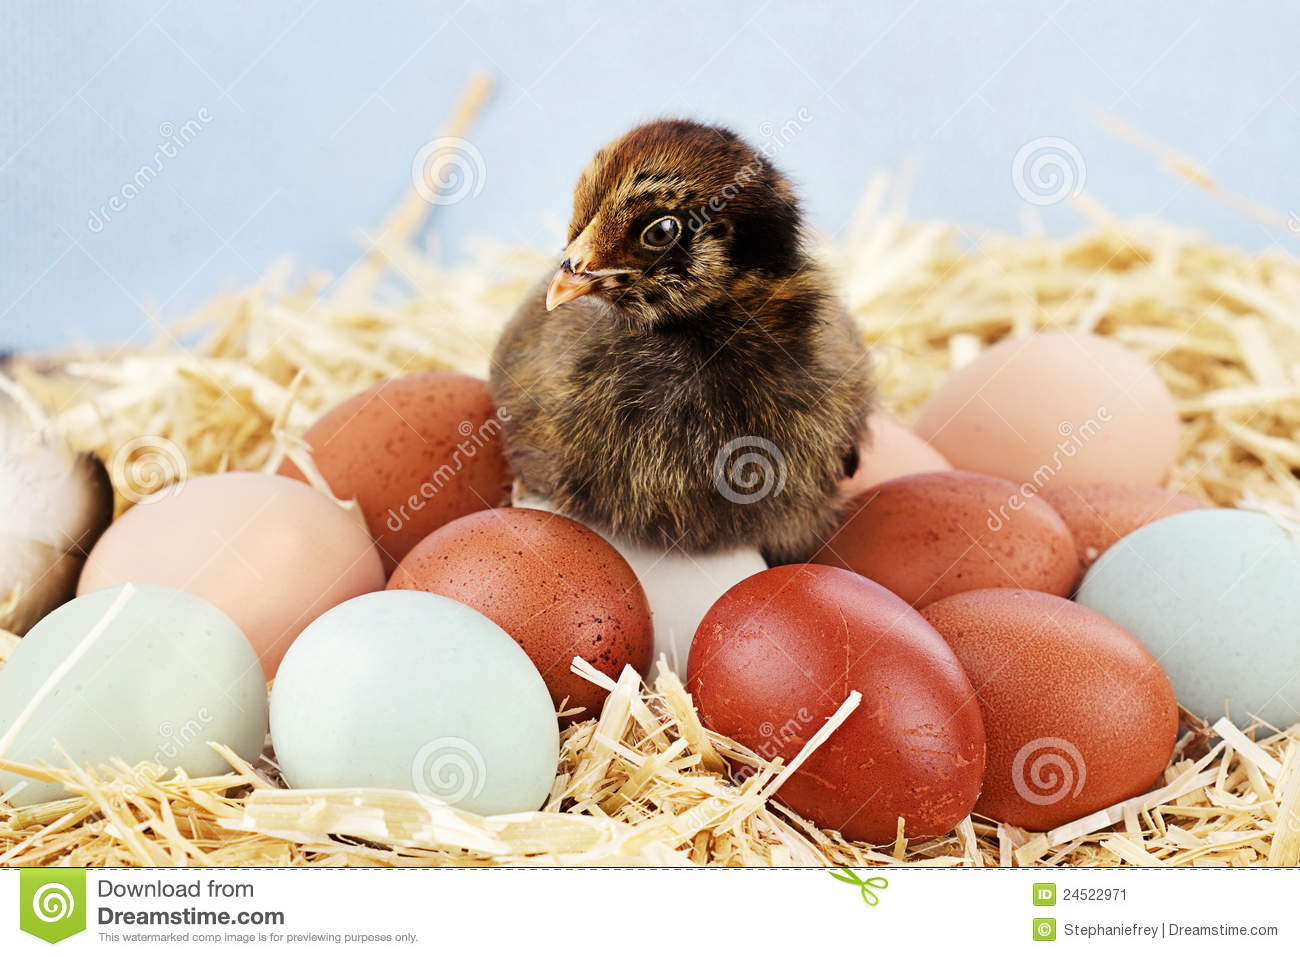 Araucana Chick And Eggs Stock Image.